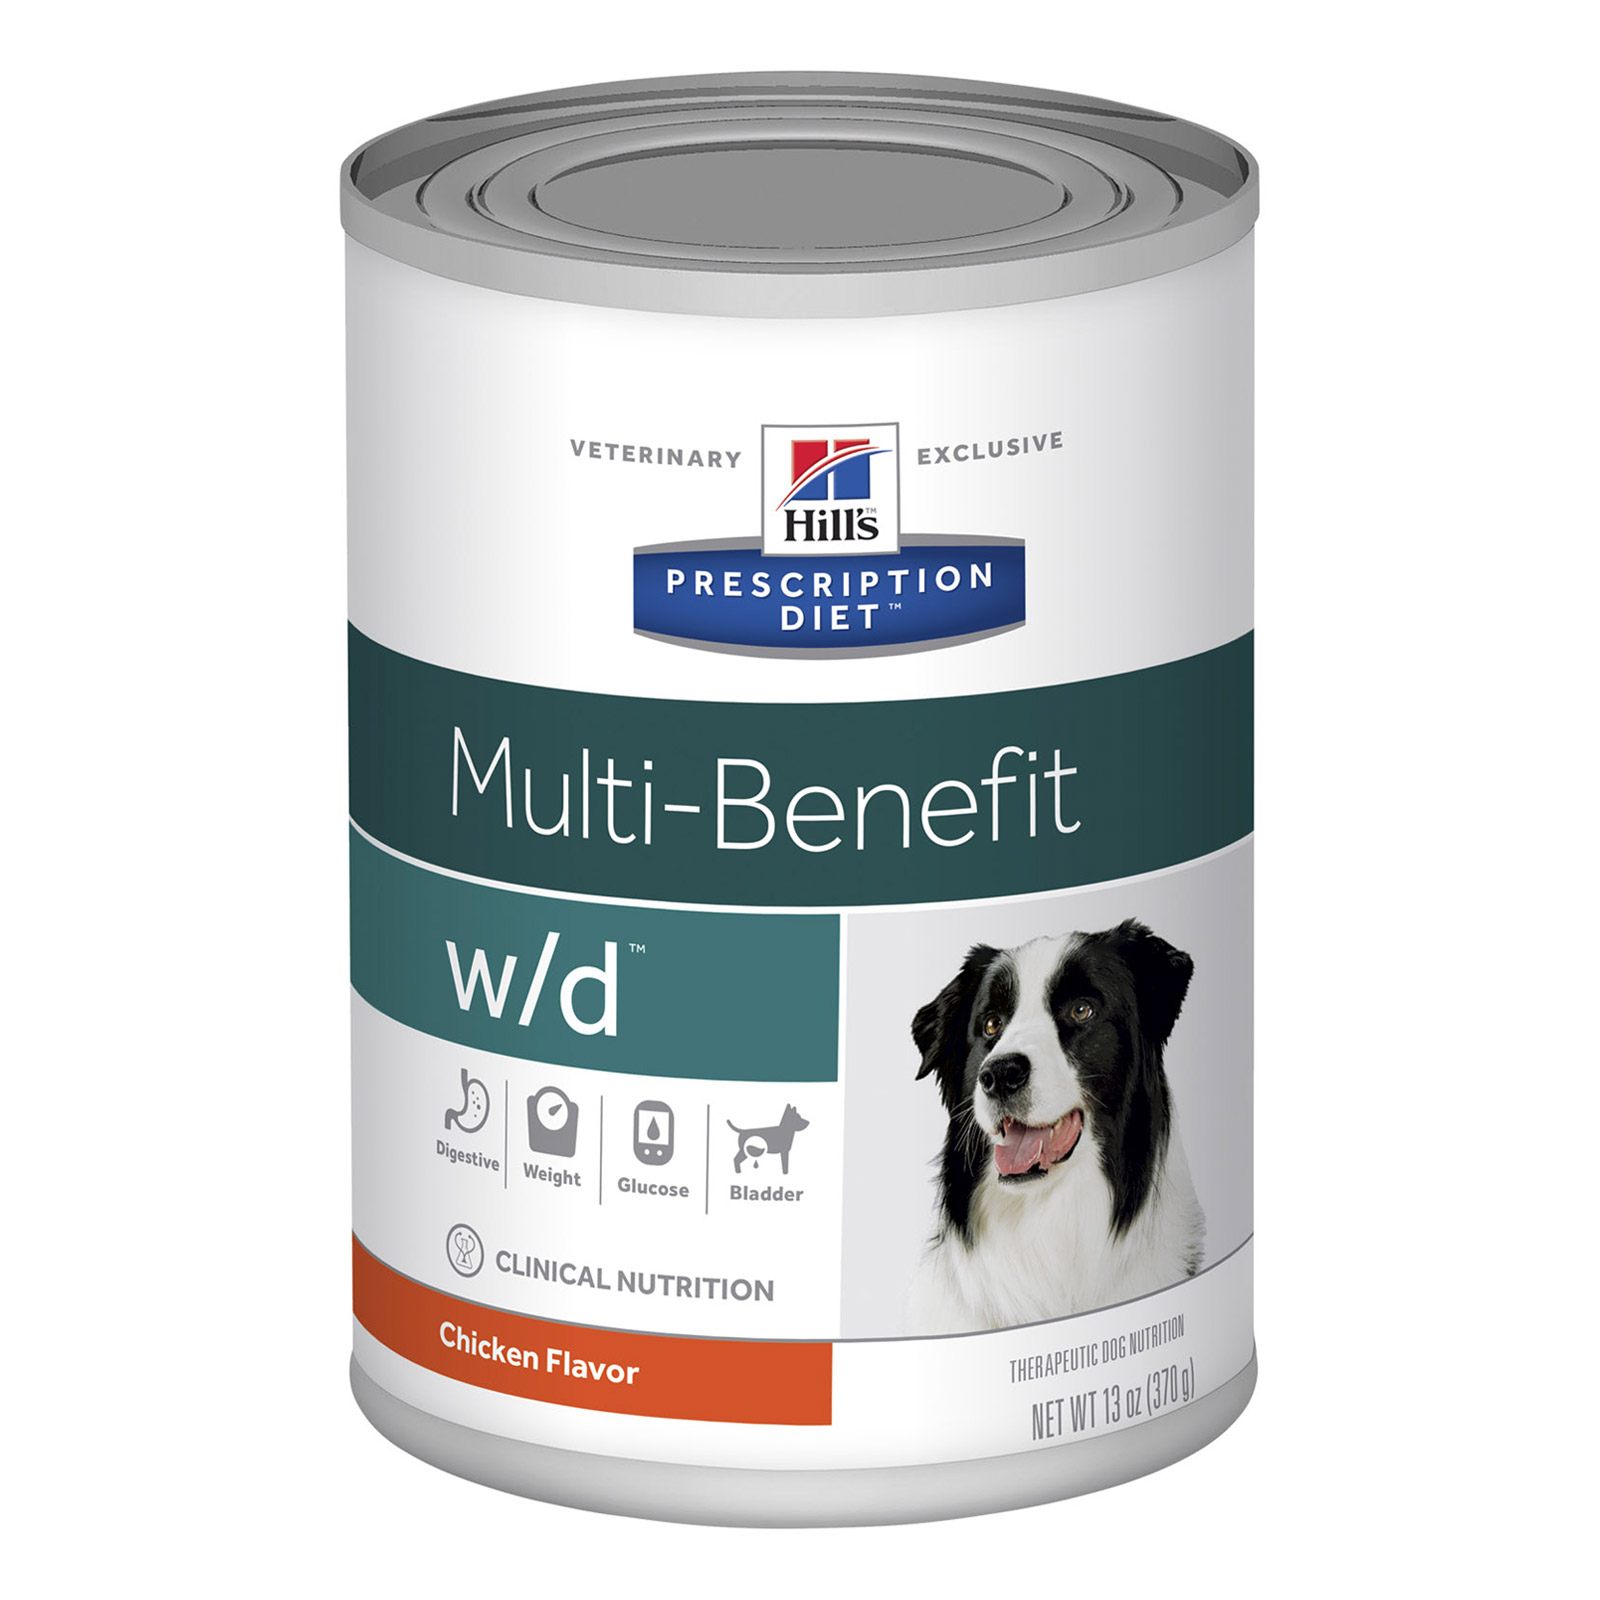 Hill's Prescription Diet W/D Digestive/Weight/Glucose Management Canned Dog Food 370 Gm 12 Cans